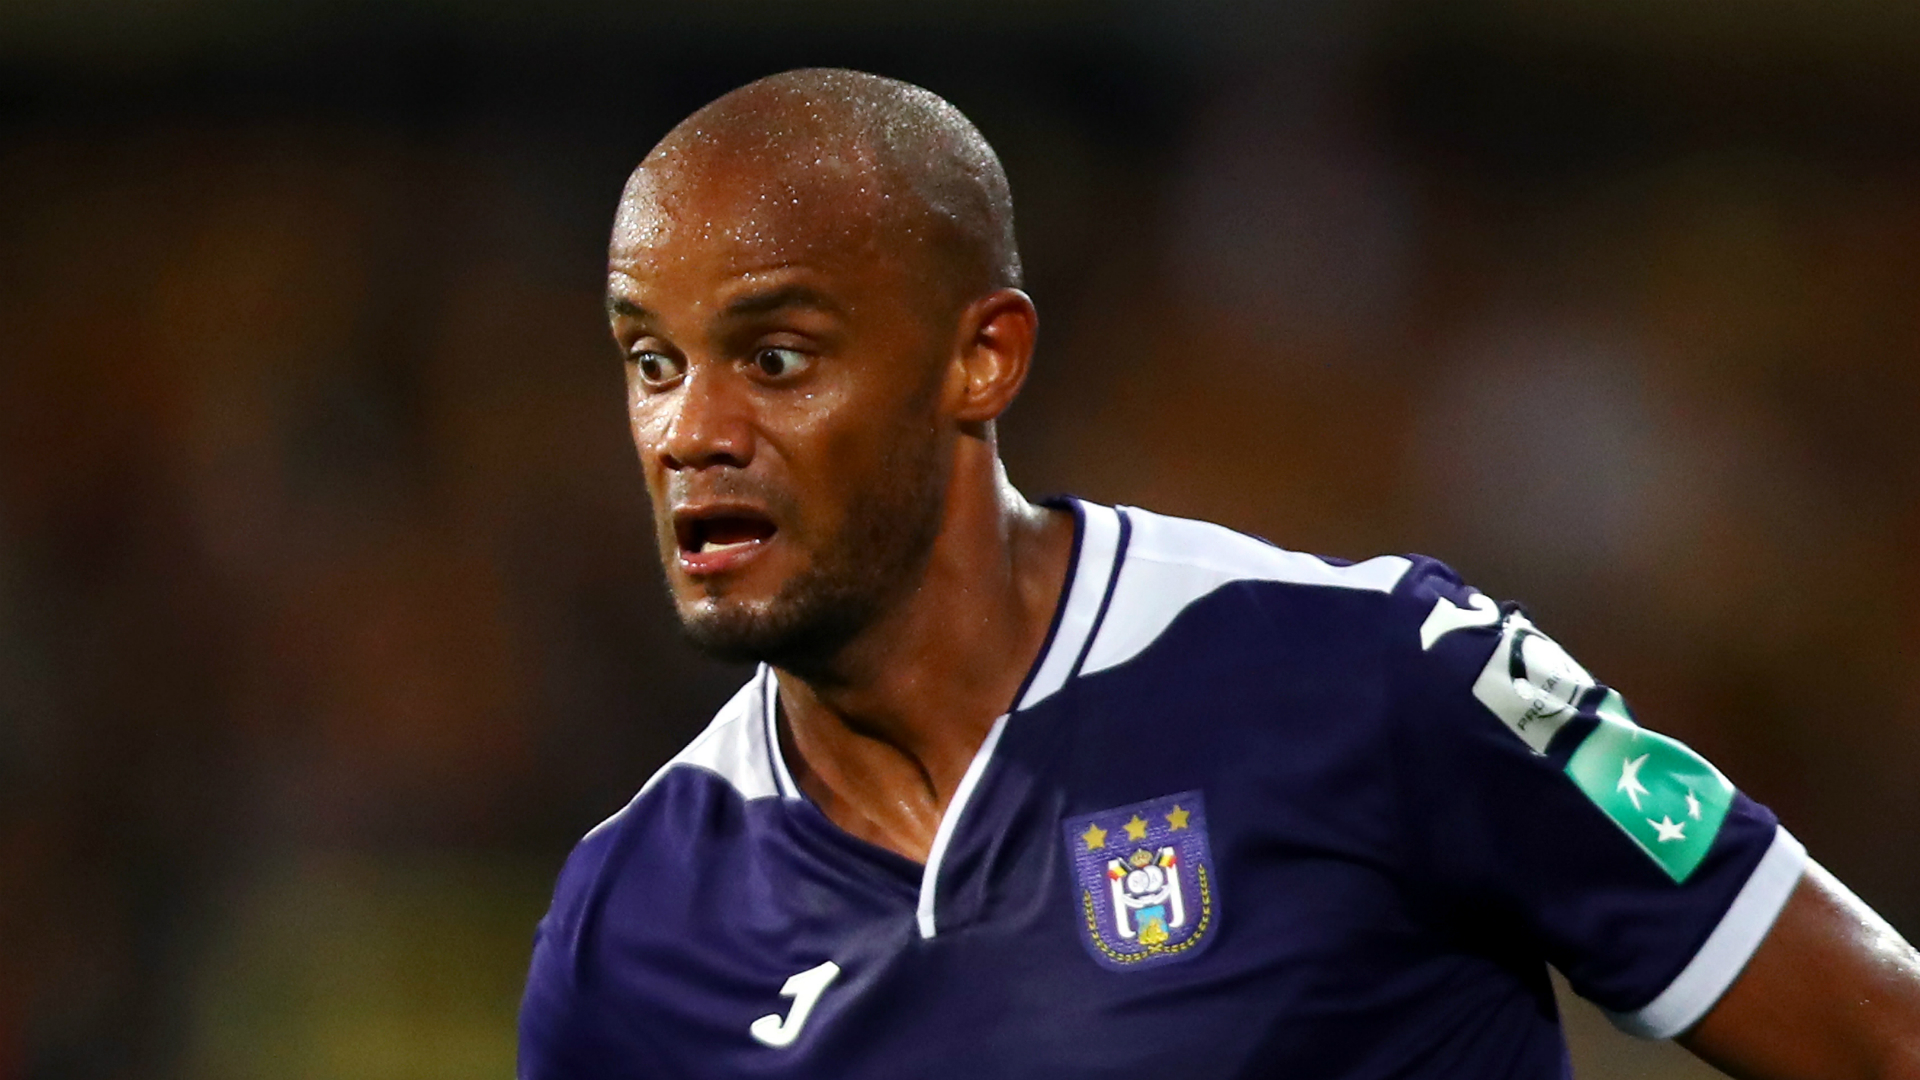 Coronavirus: Kompany and Anderlecht set for training sessions with a difference